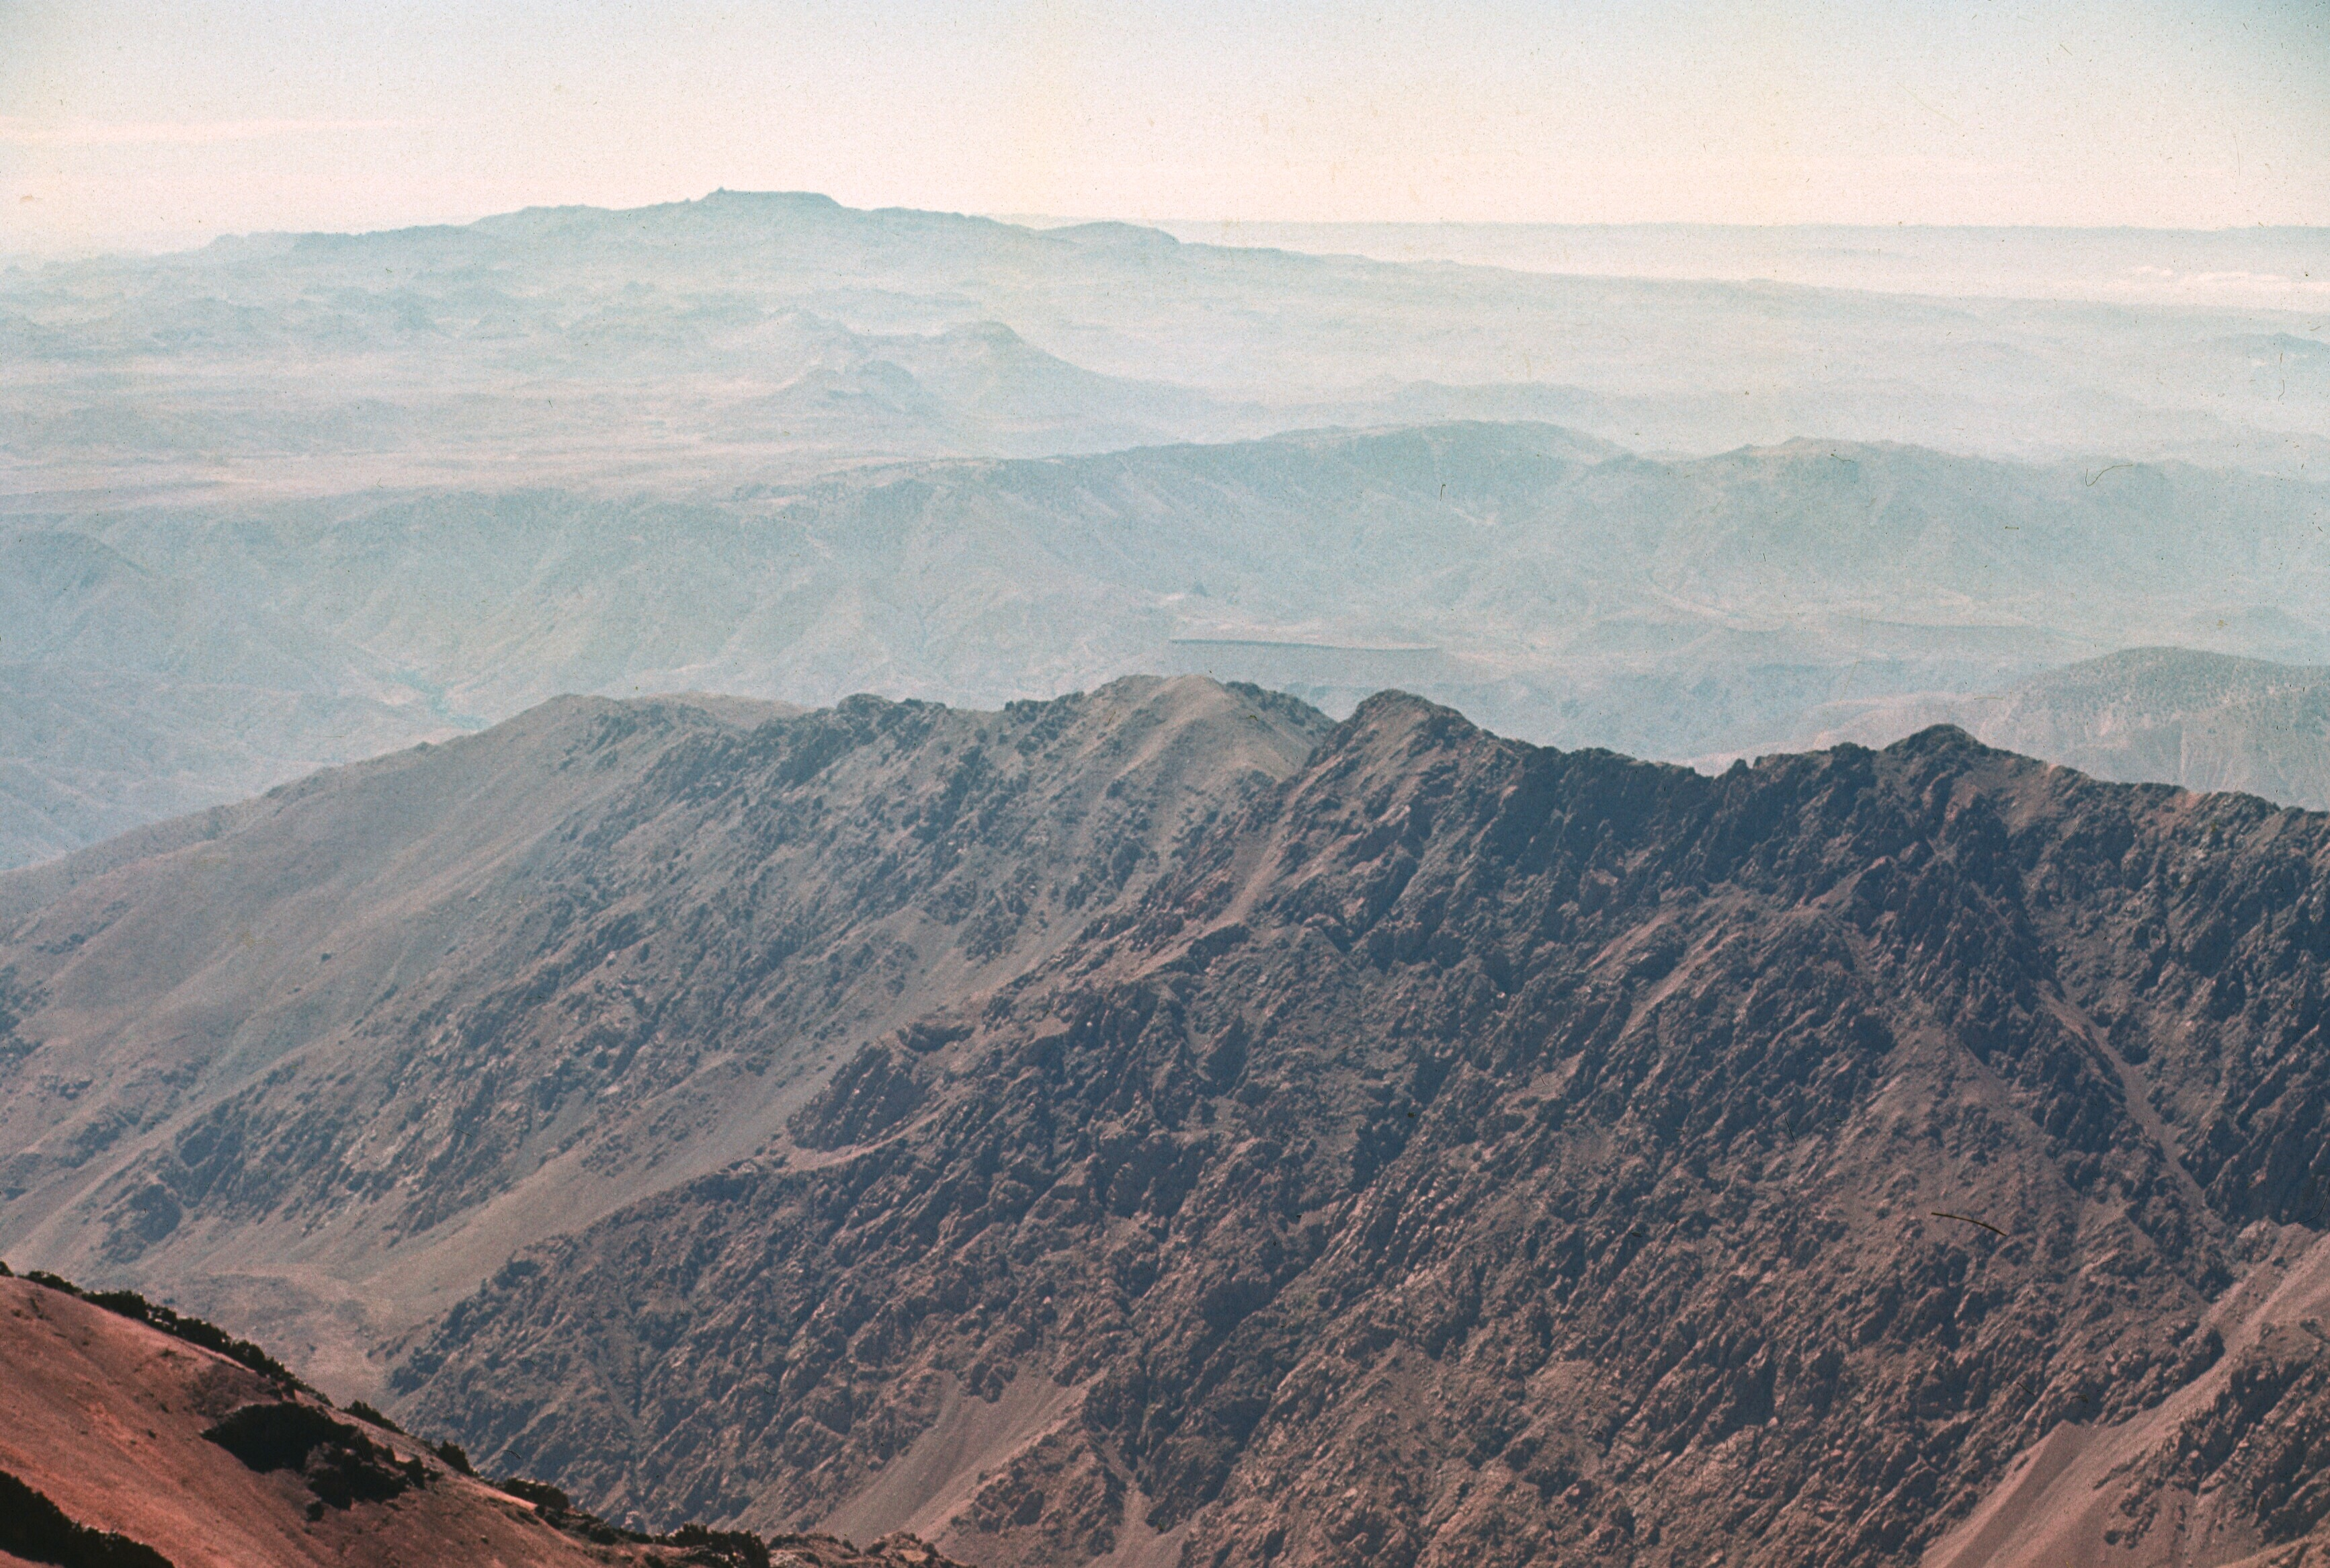 morocco h atlas toubkal pano sw anti atlas copy